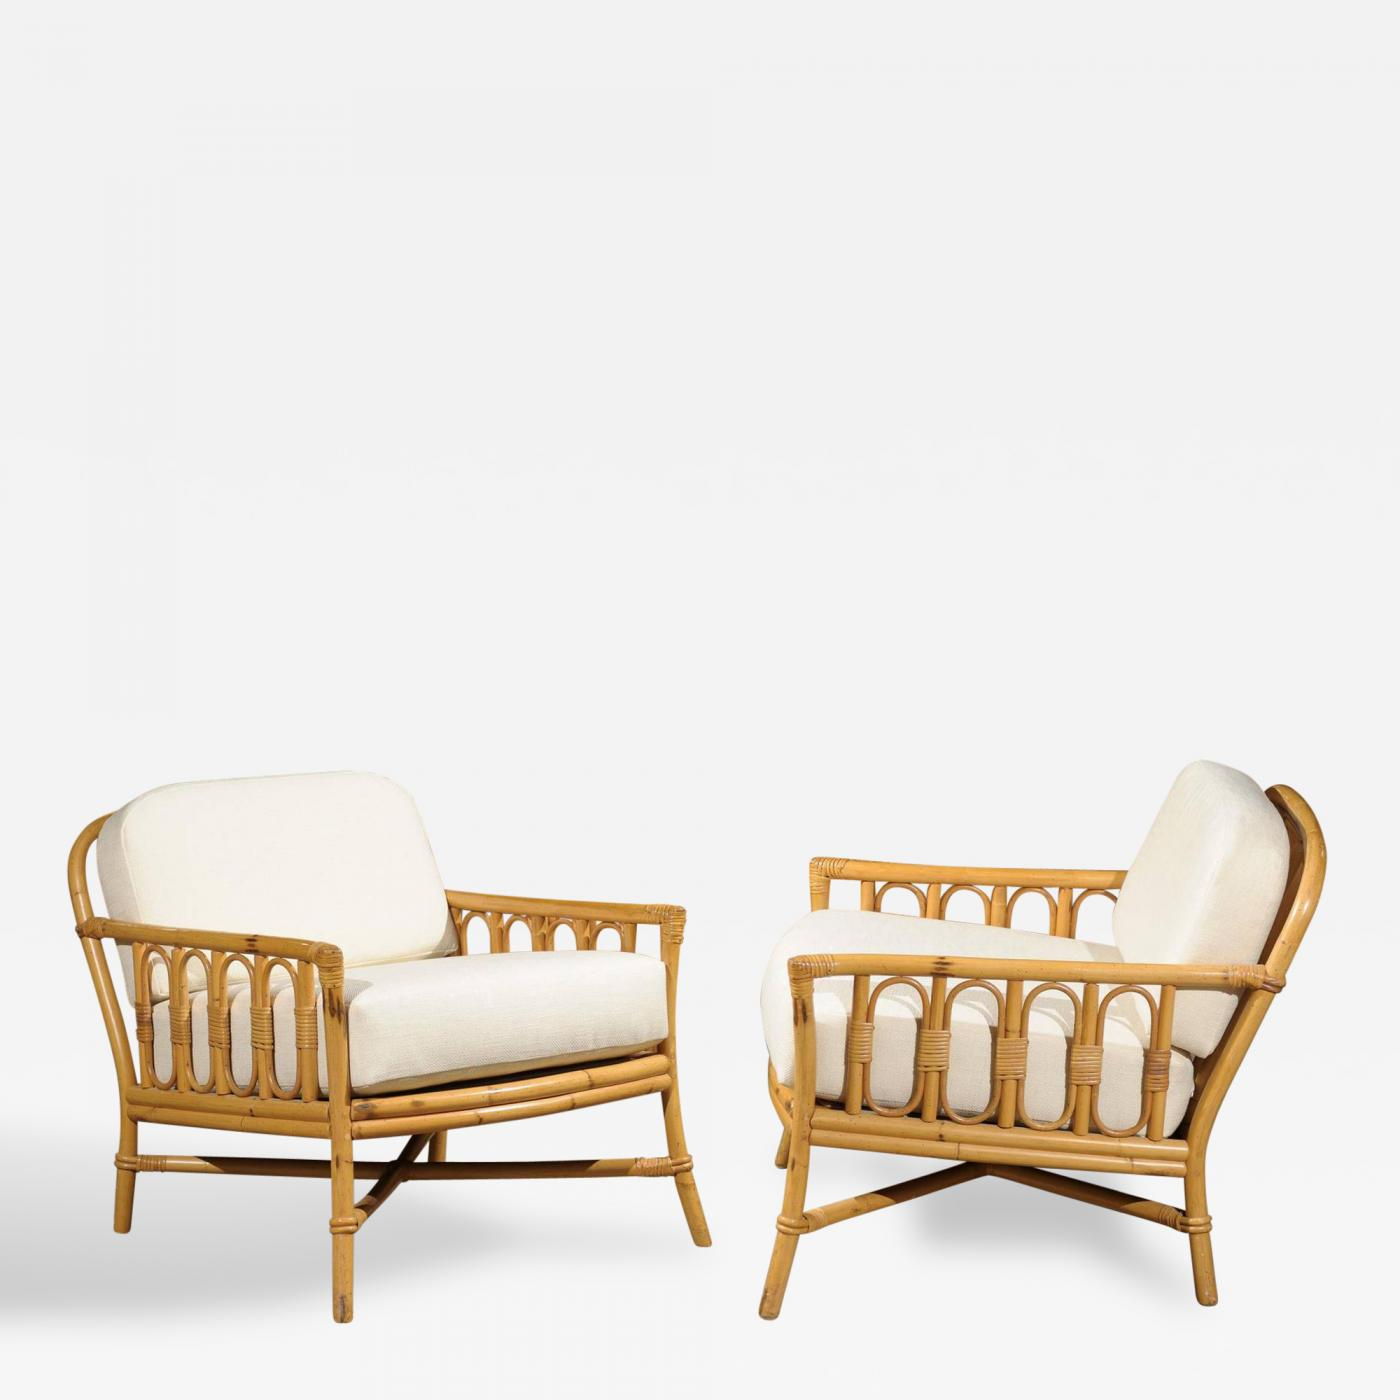 Ordinaire Listings / Furniture / Seating / Armchairs